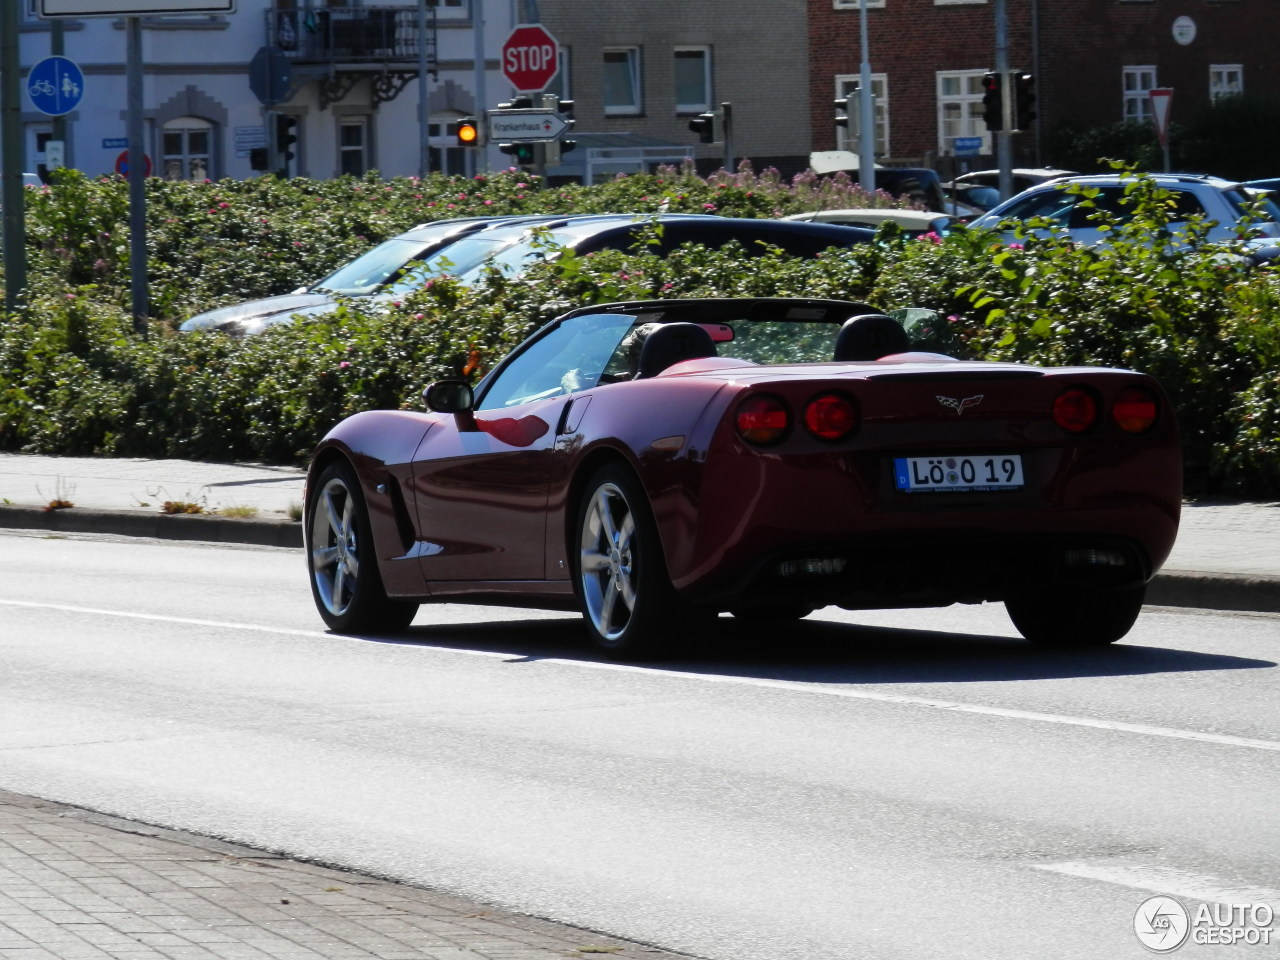 Chevrolet Corvette C6 Convertible 4